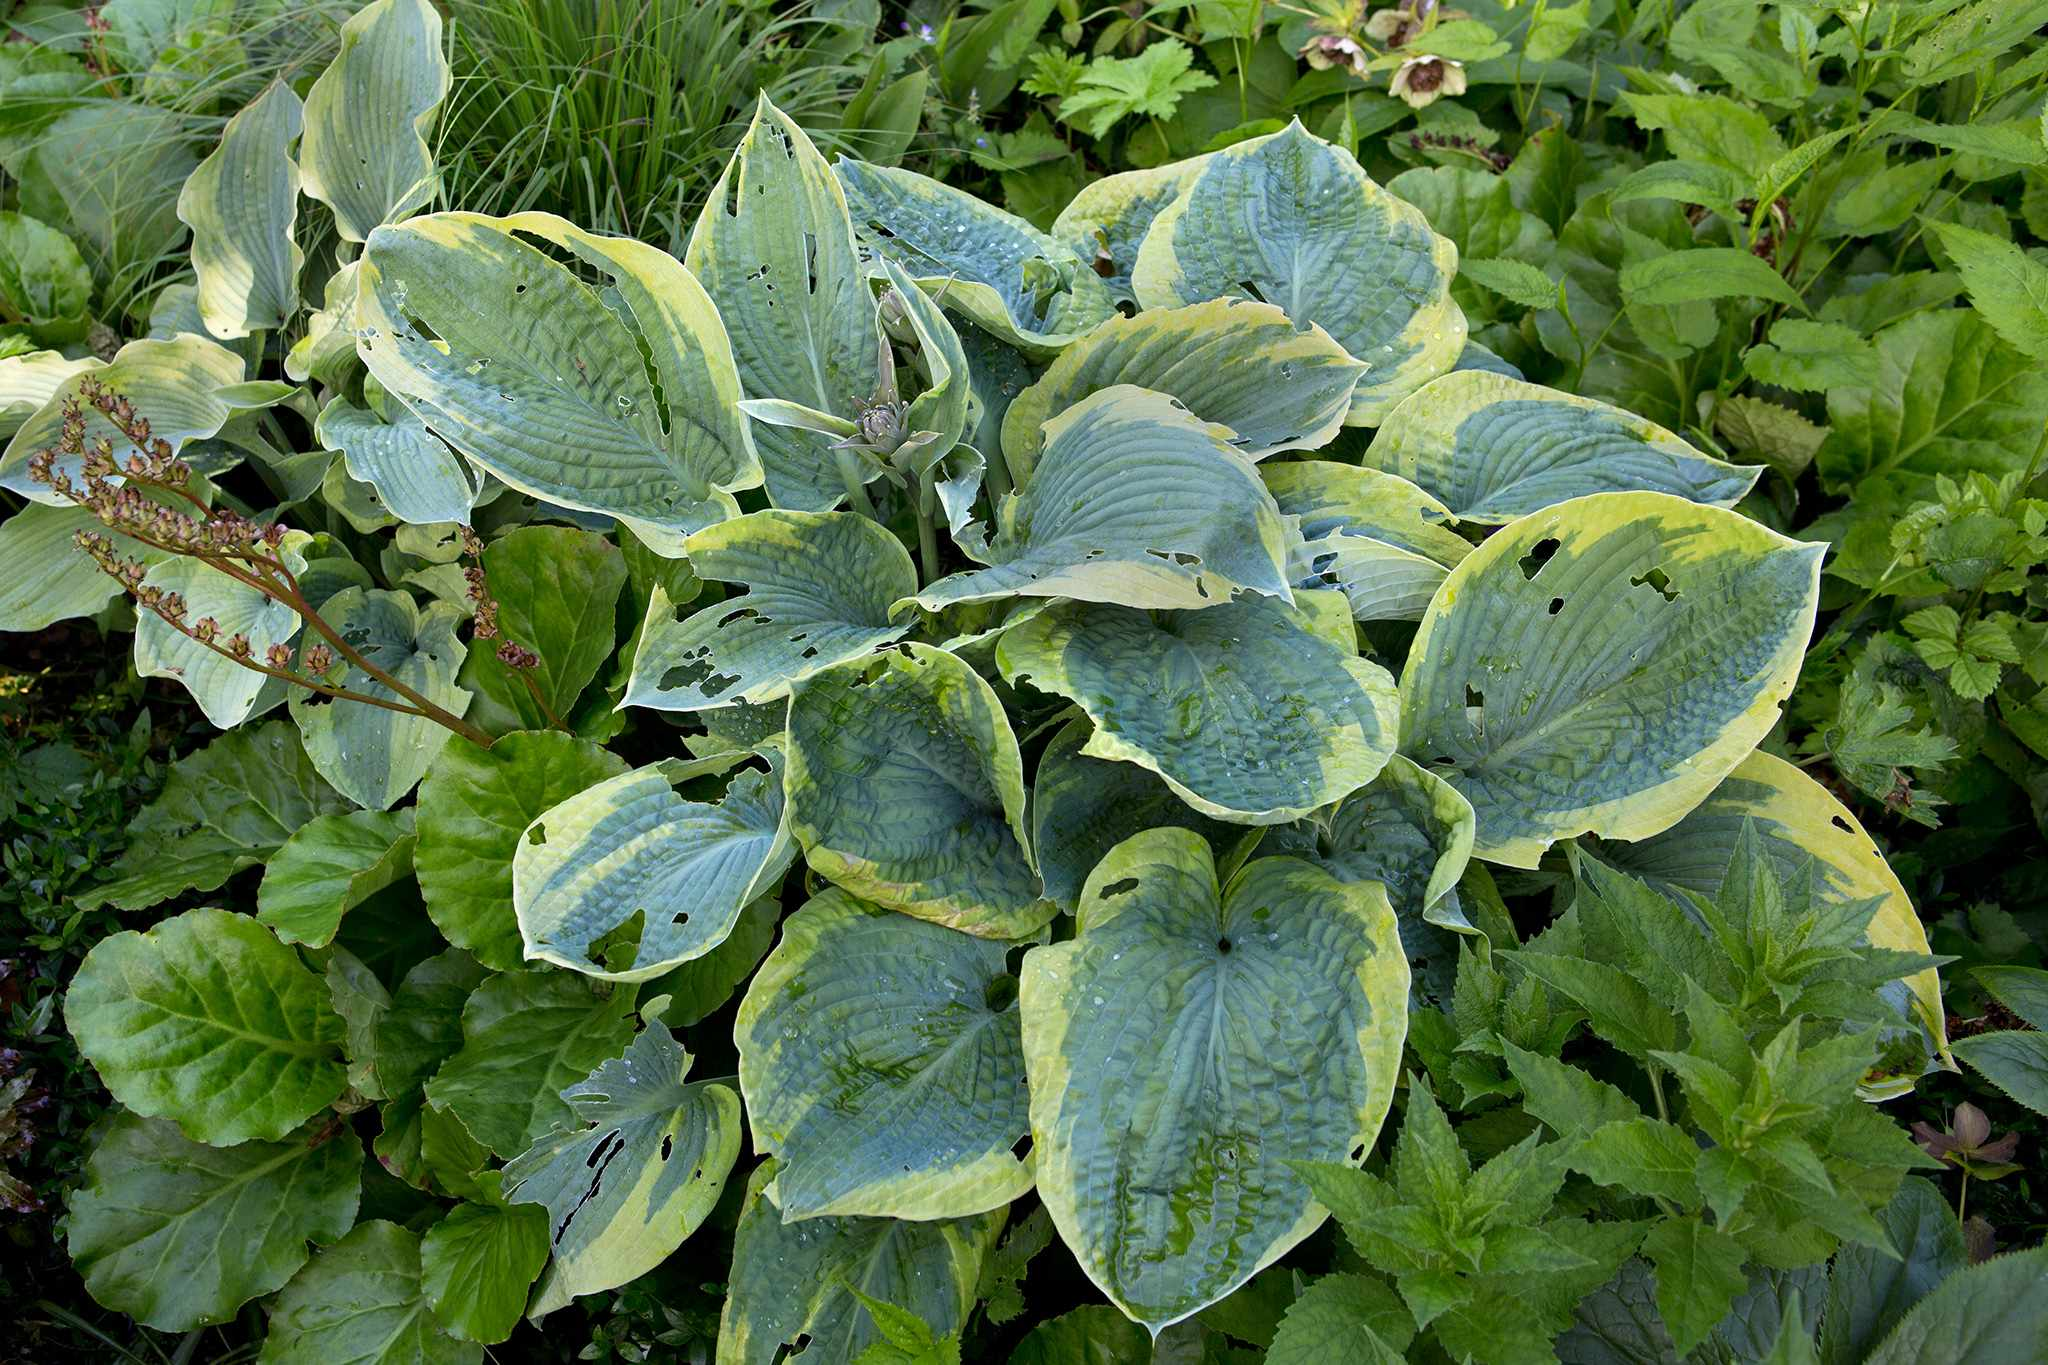 Hosta leaves with slug and snail damage